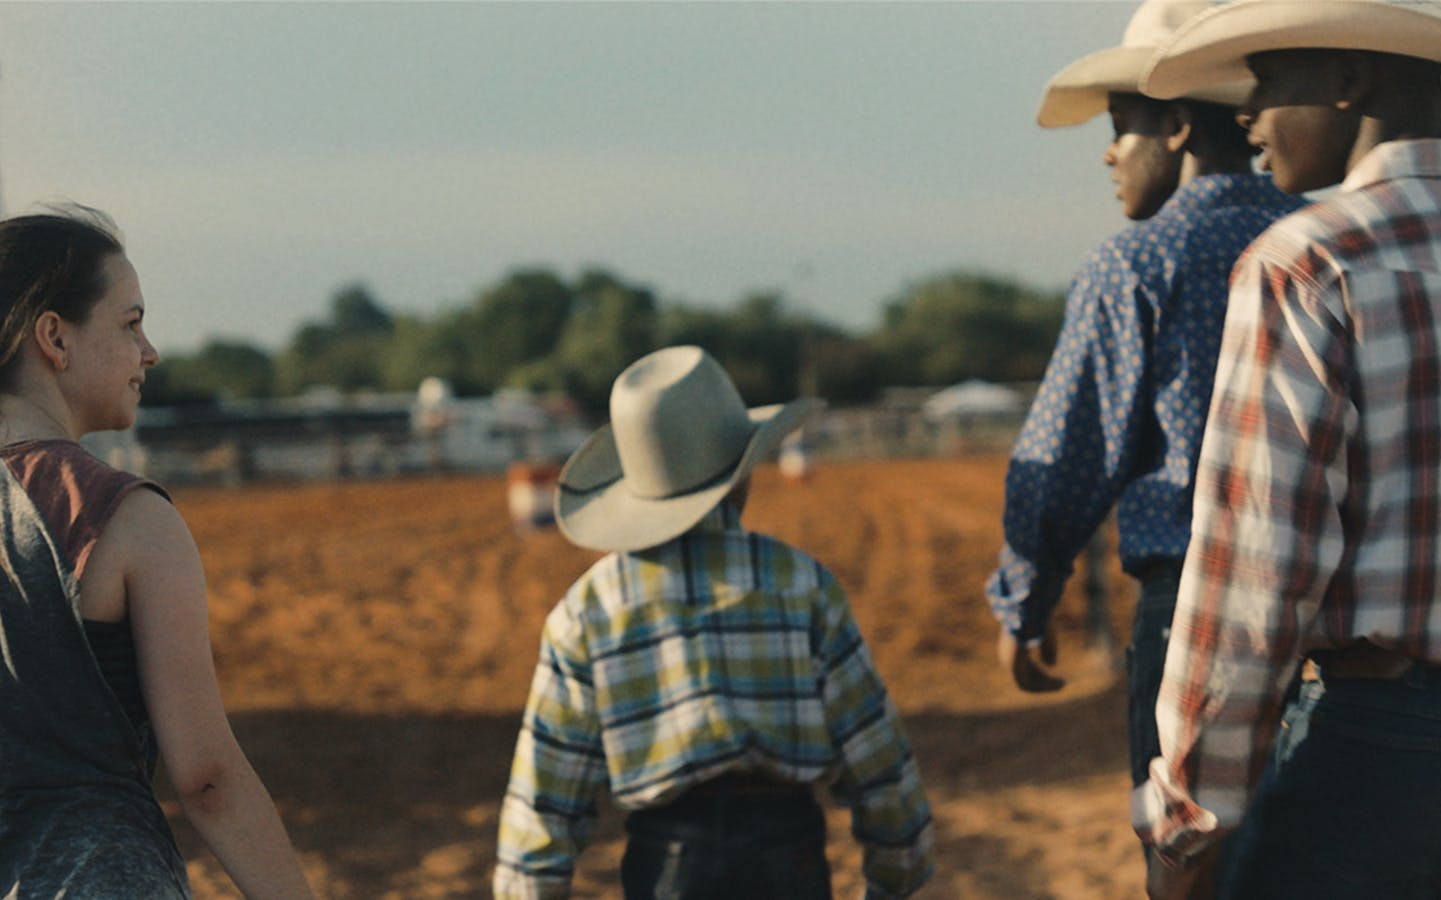 A still from the movie Bull, set in the outskirts of Houston and directed by Annie Silverstein.